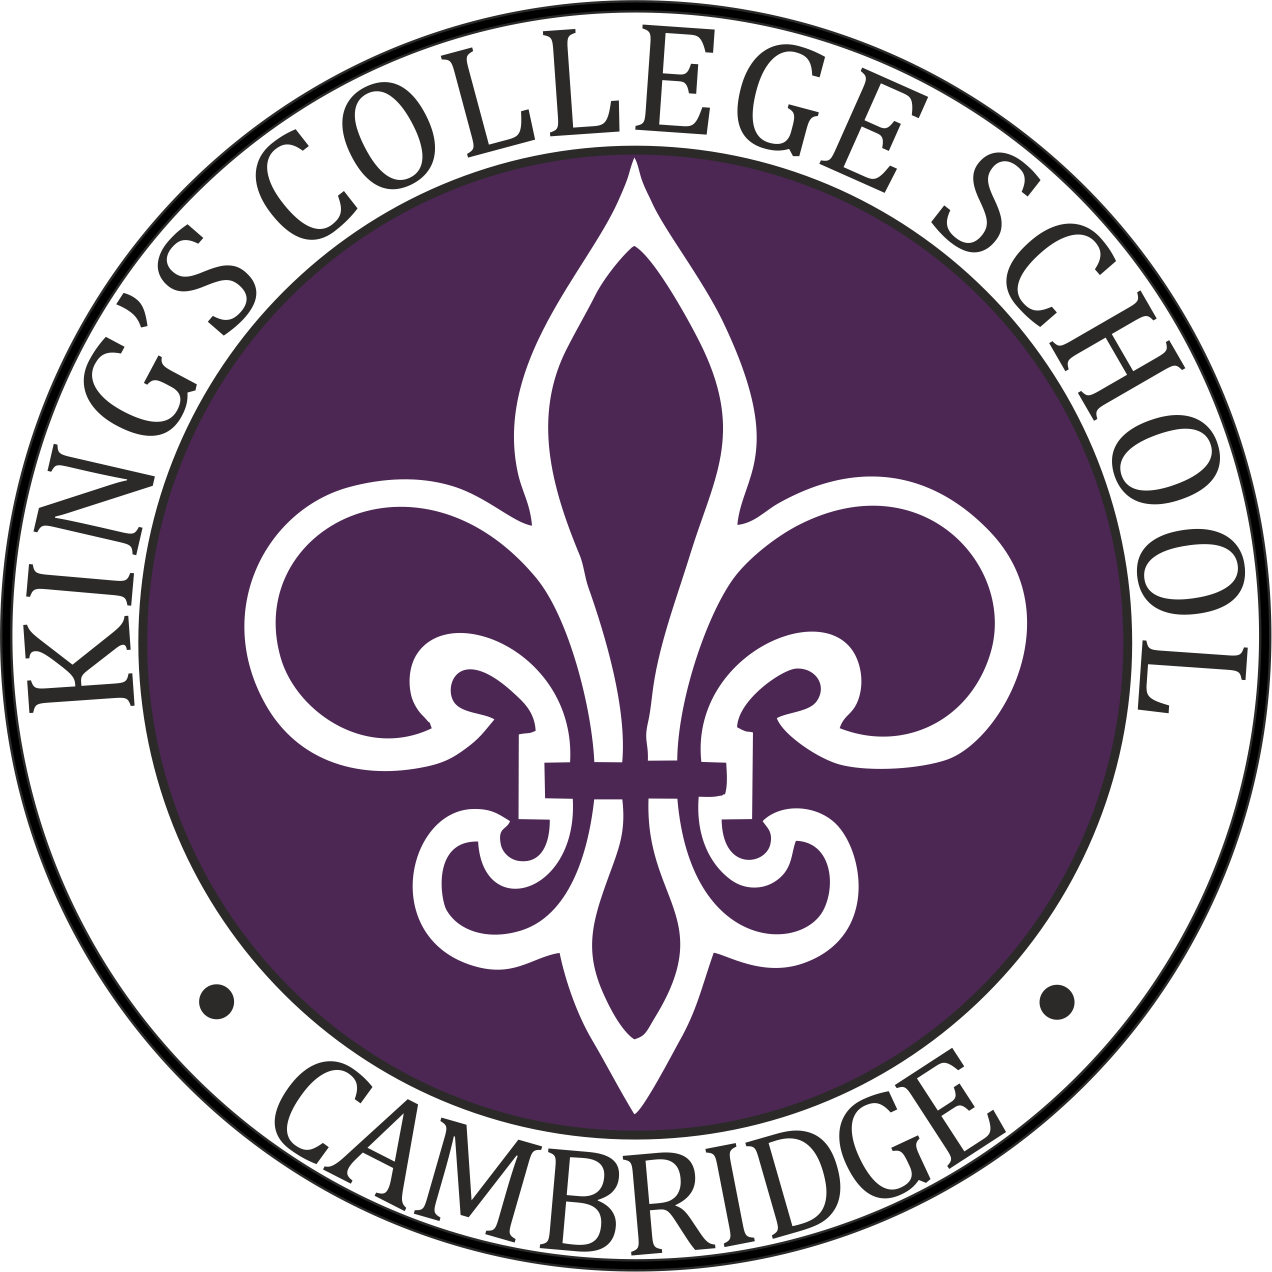 kings college cam - Copy.png